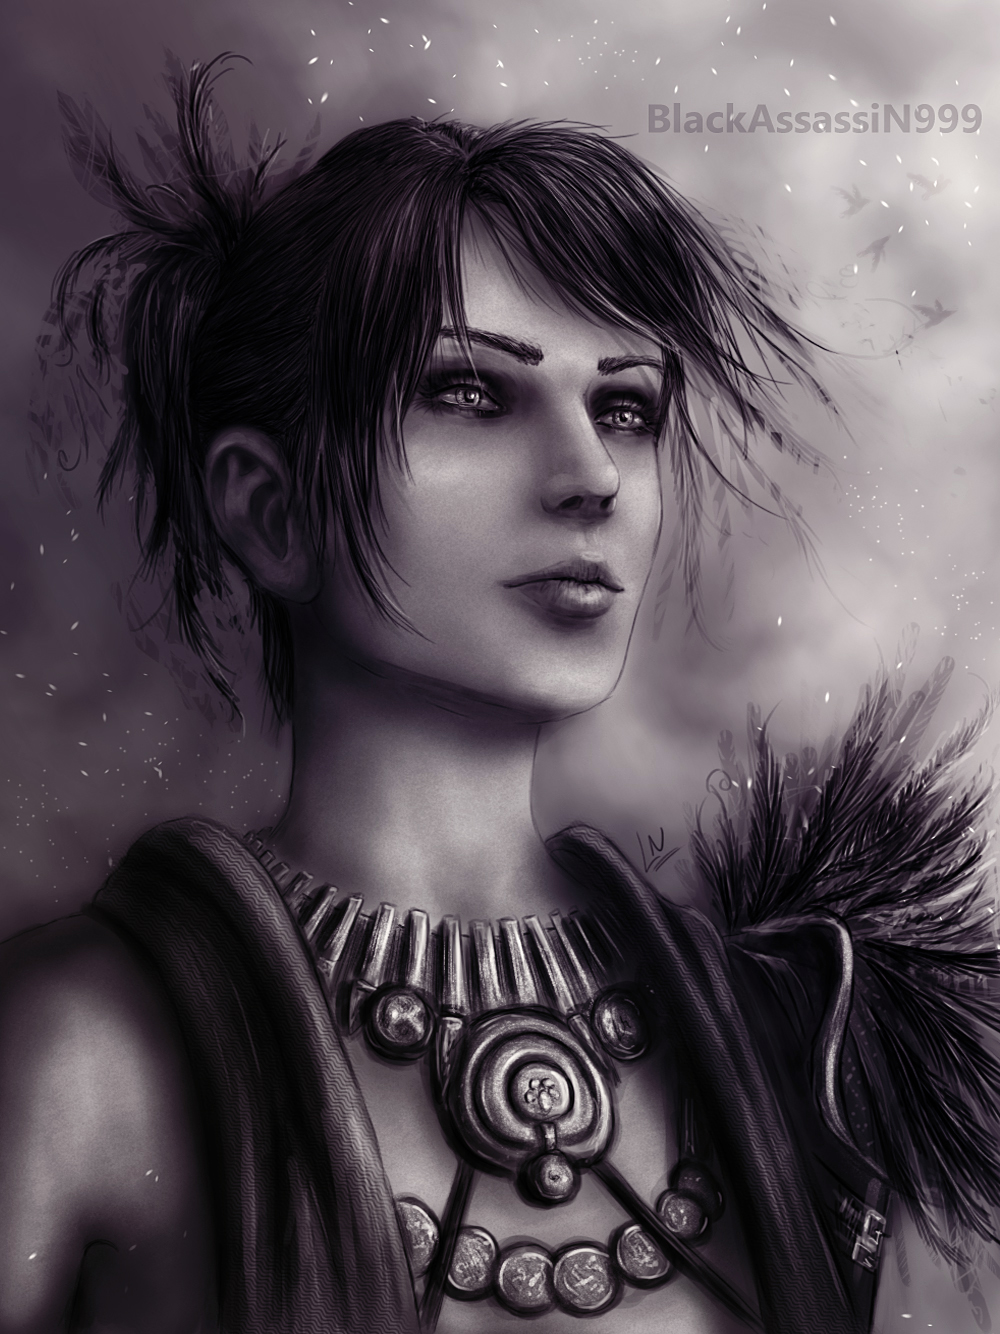 Morrigan by BlackAssassiN999